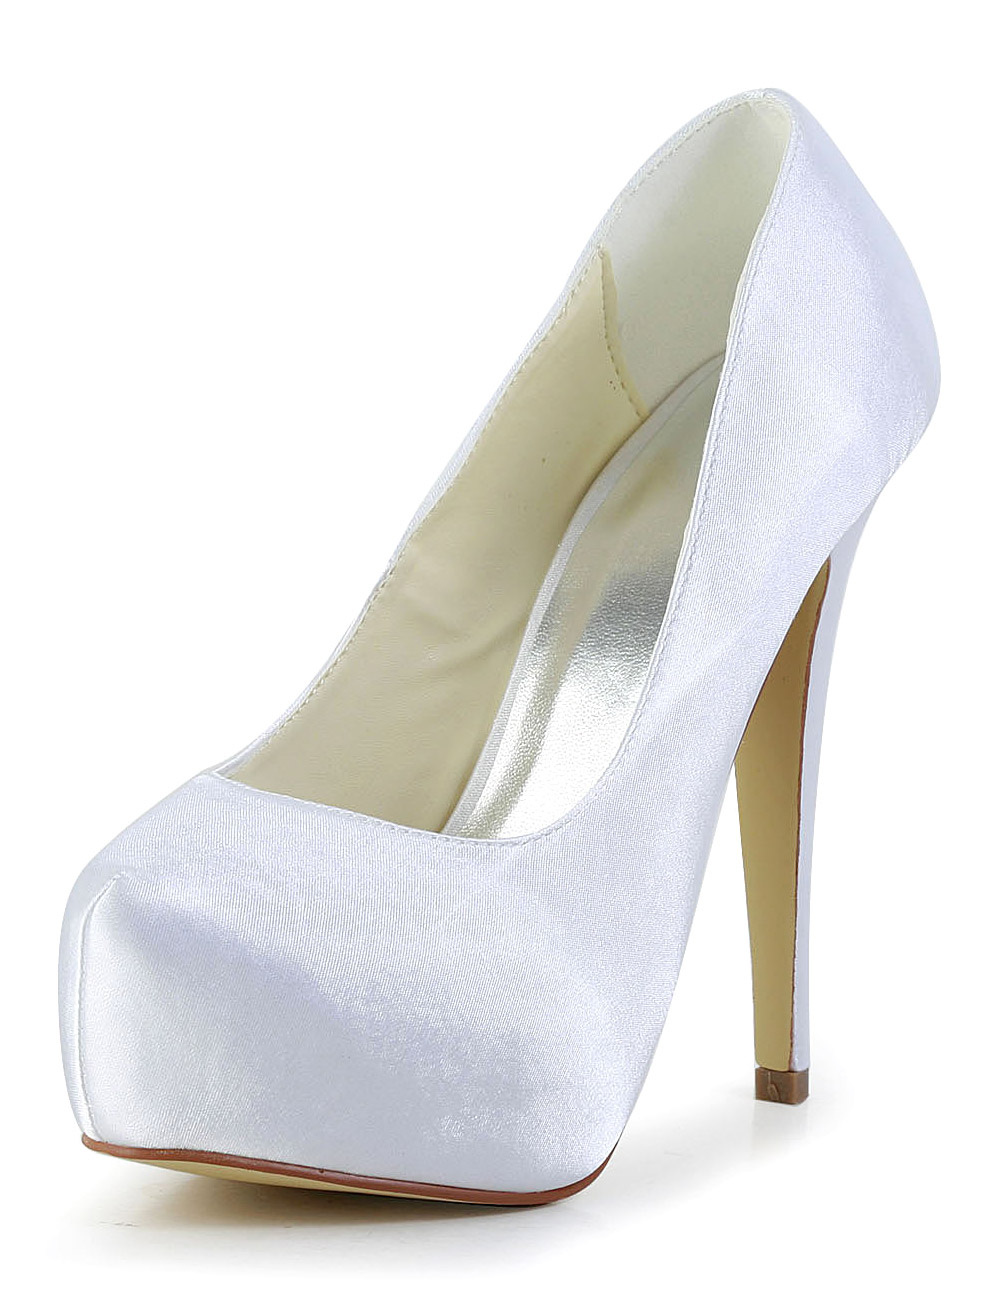 White Silk And Satin Round Toe Evening and Bride's Platforms